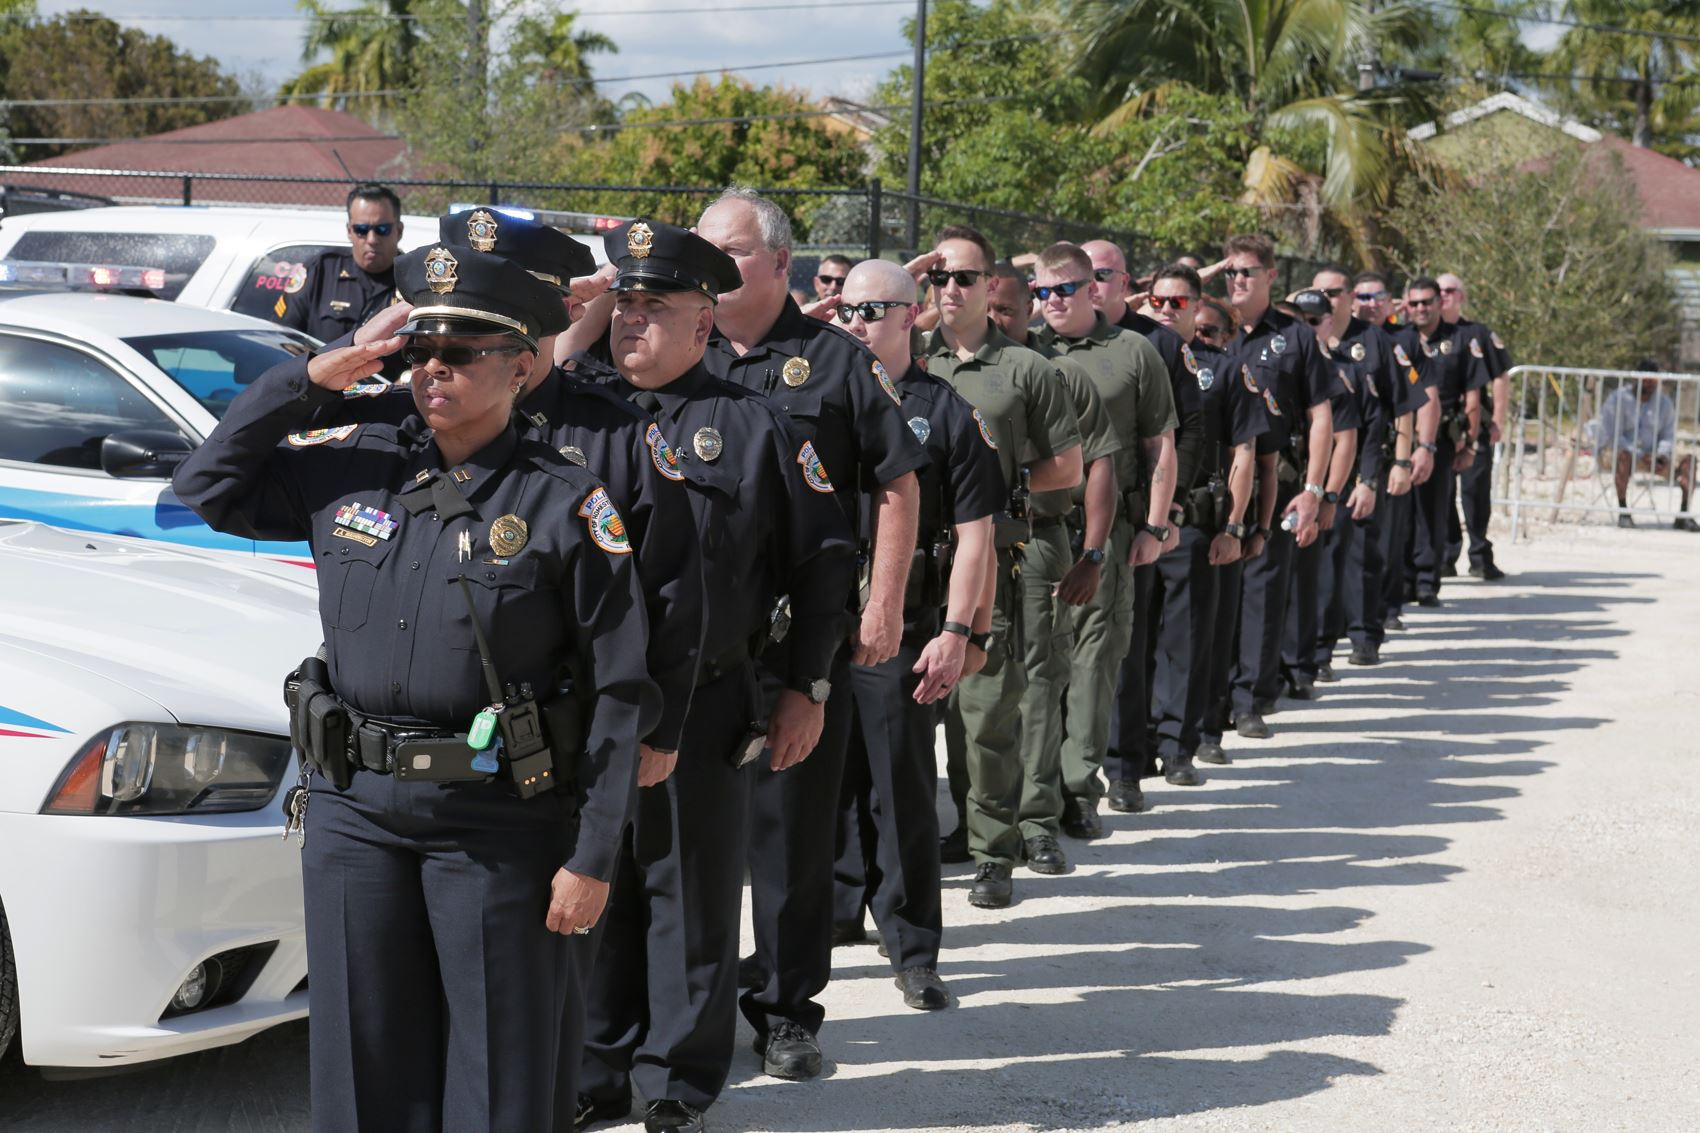 Police | Homestead, FL - Official Website